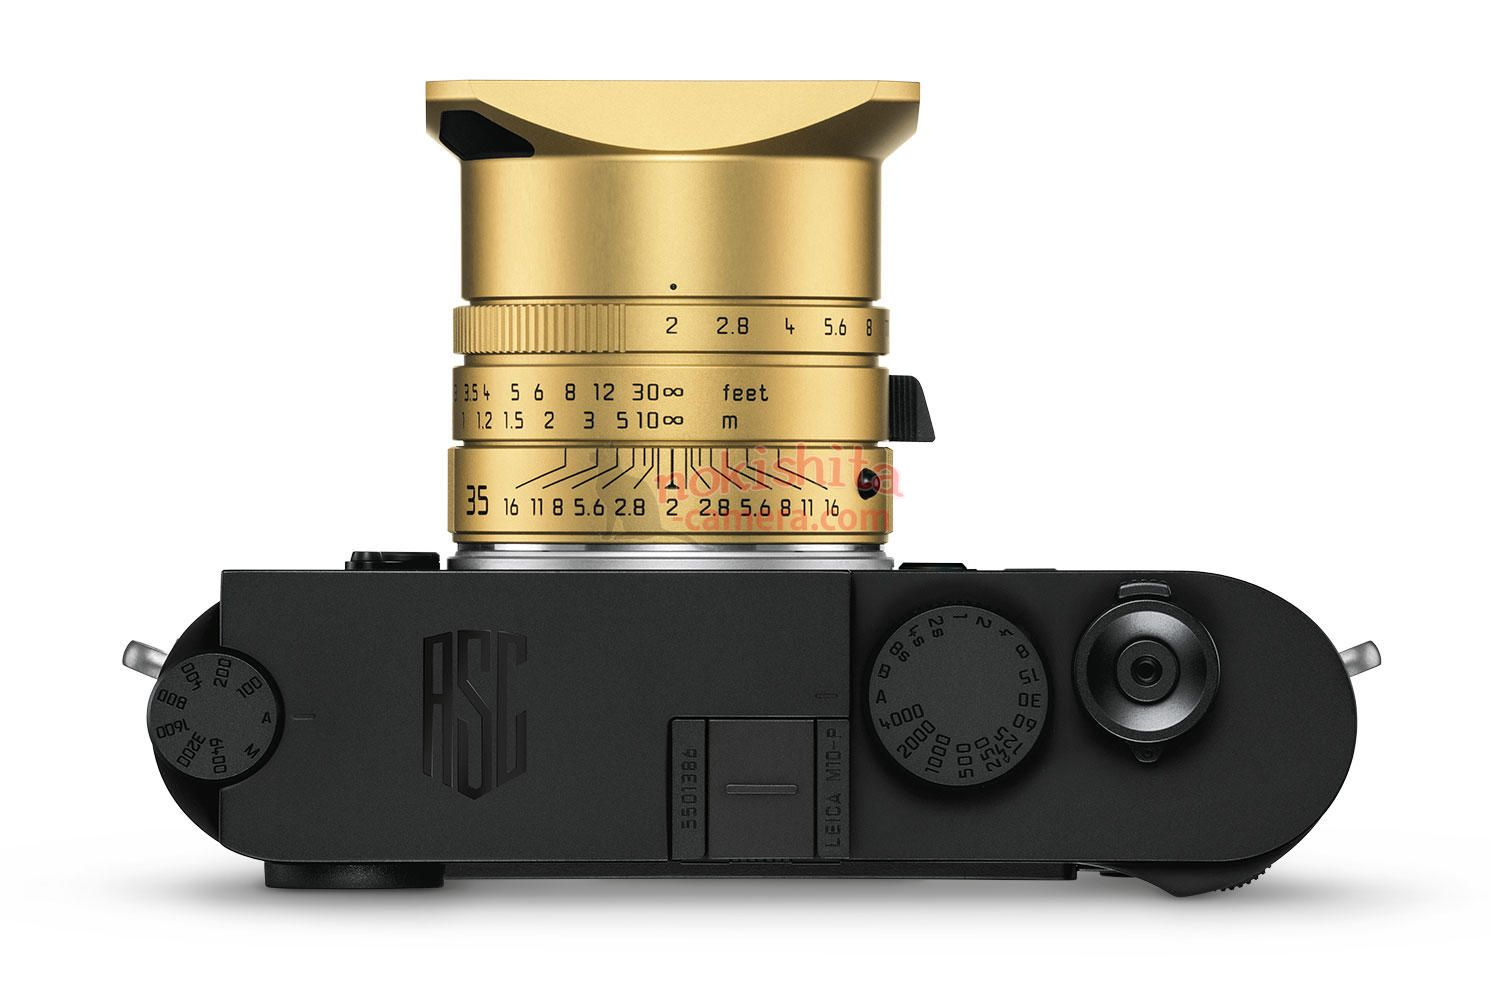 Leica-M10-P-ASC-100-limited-edition-camera-American-Society-of-Cinematographers3